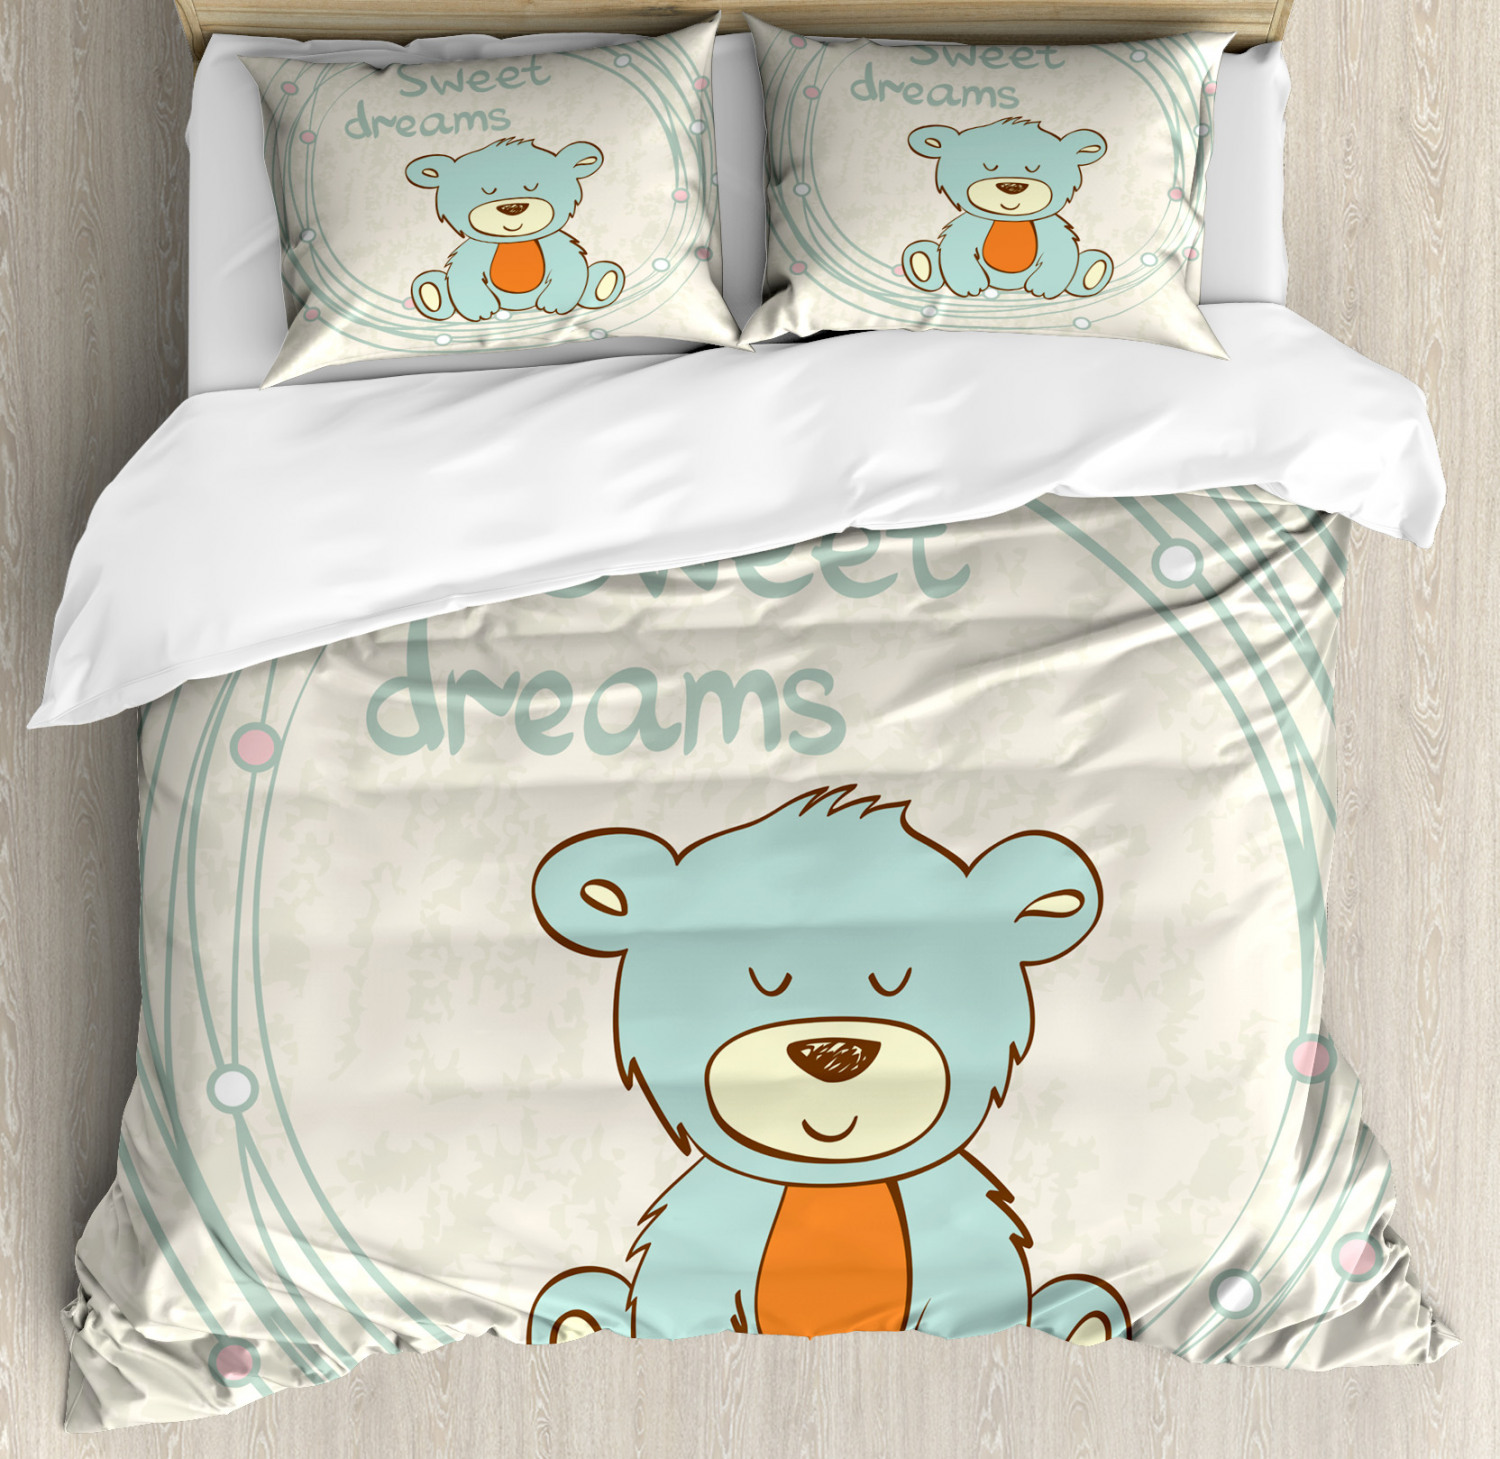 sweet dreams duvet cover set with pillow shams teddy bear. Black Bedroom Furniture Sets. Home Design Ideas